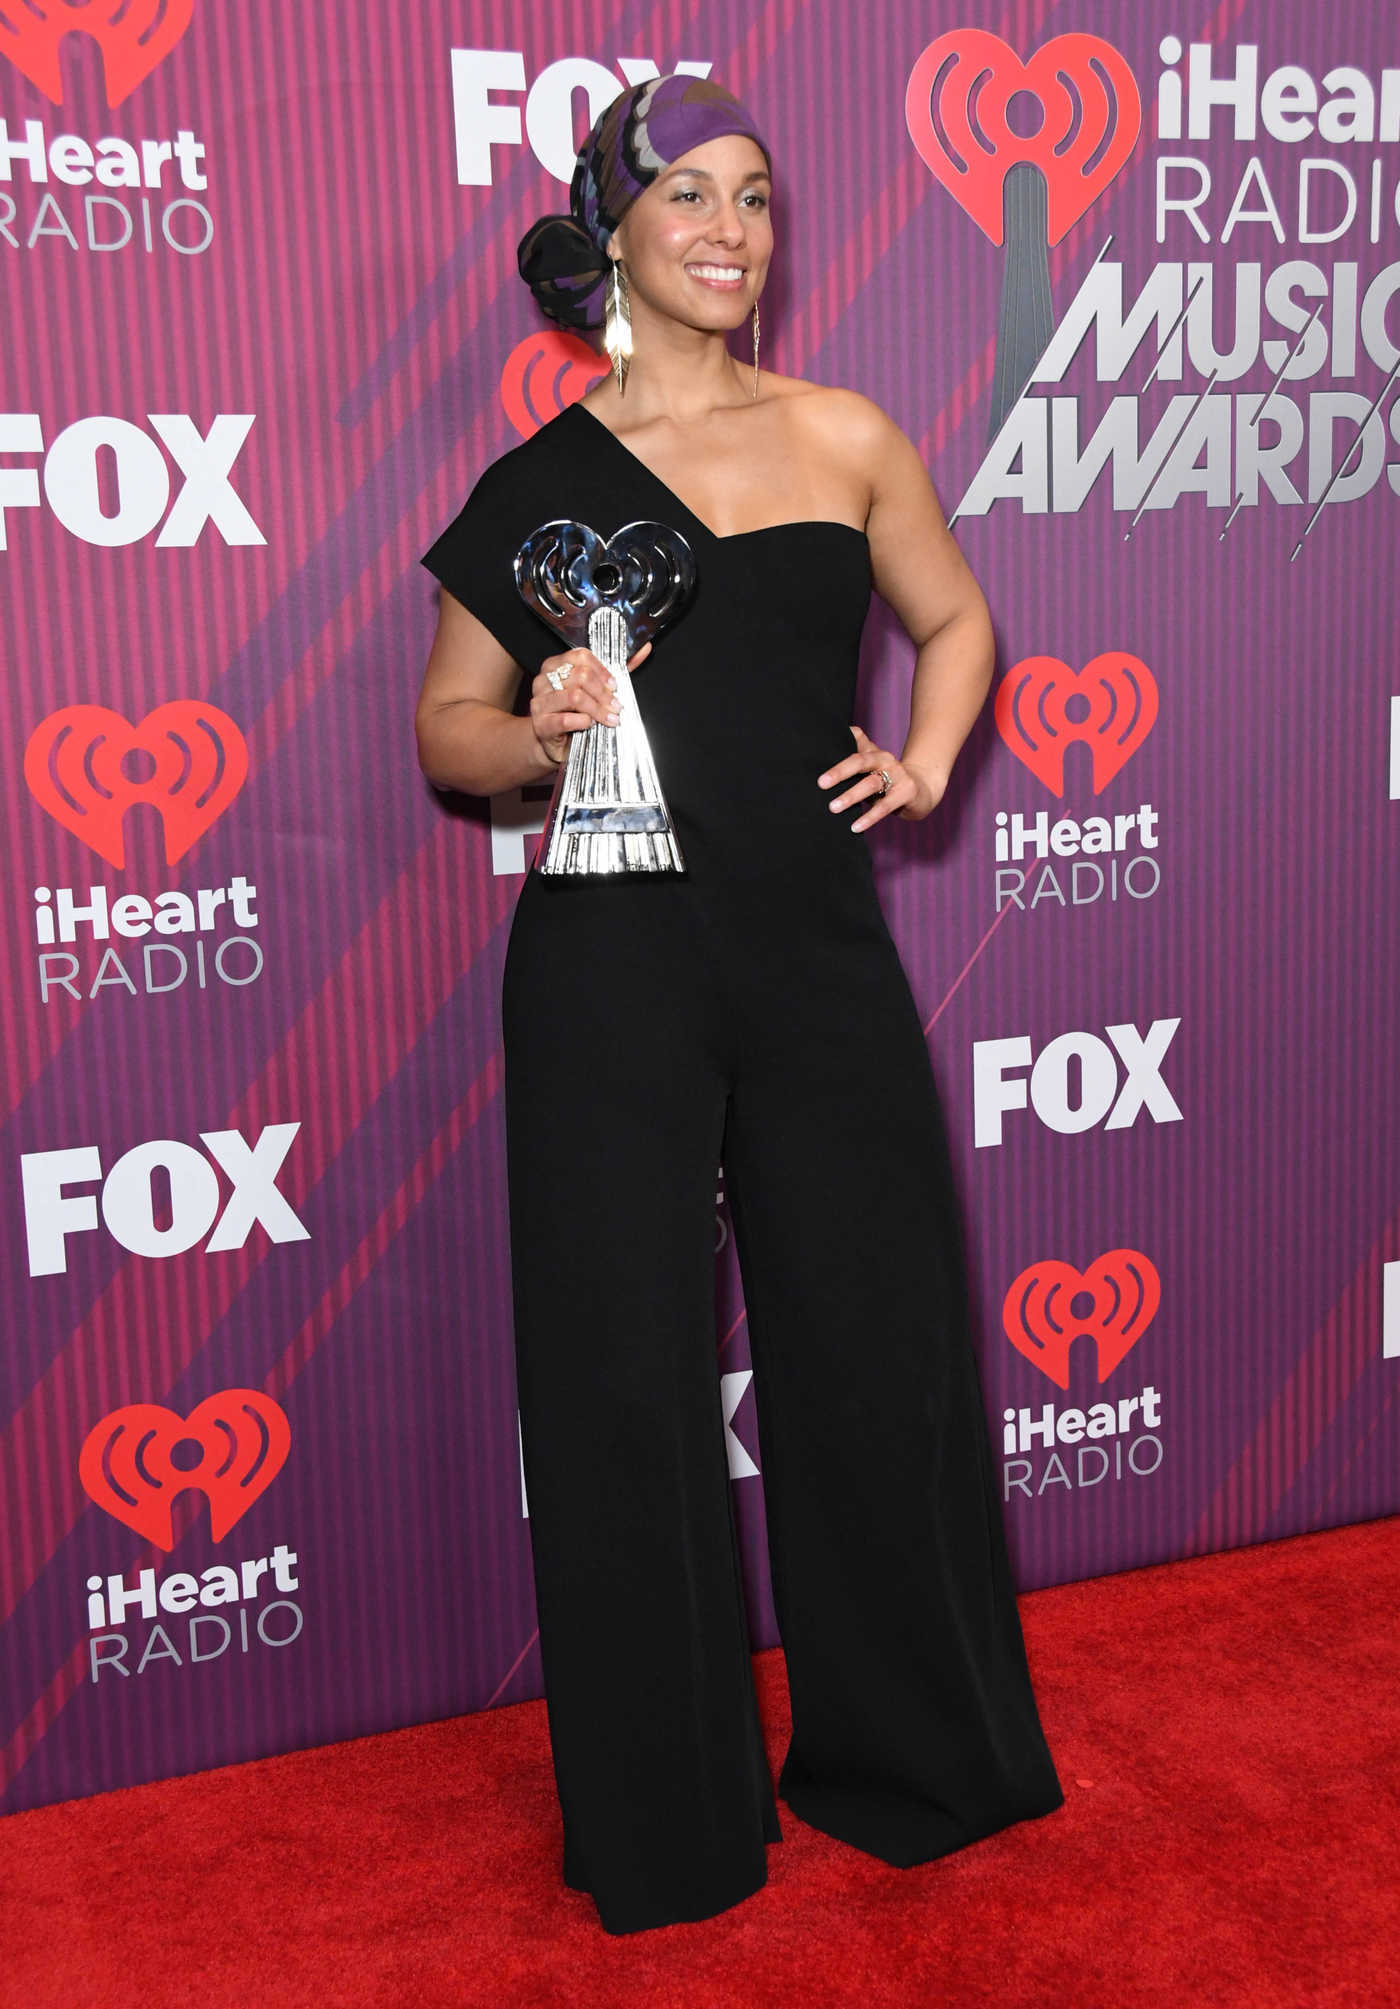 e6d25950d2 Alicia Keys Attends 2019 iHeartRadio Music Awards at Microsoft ...